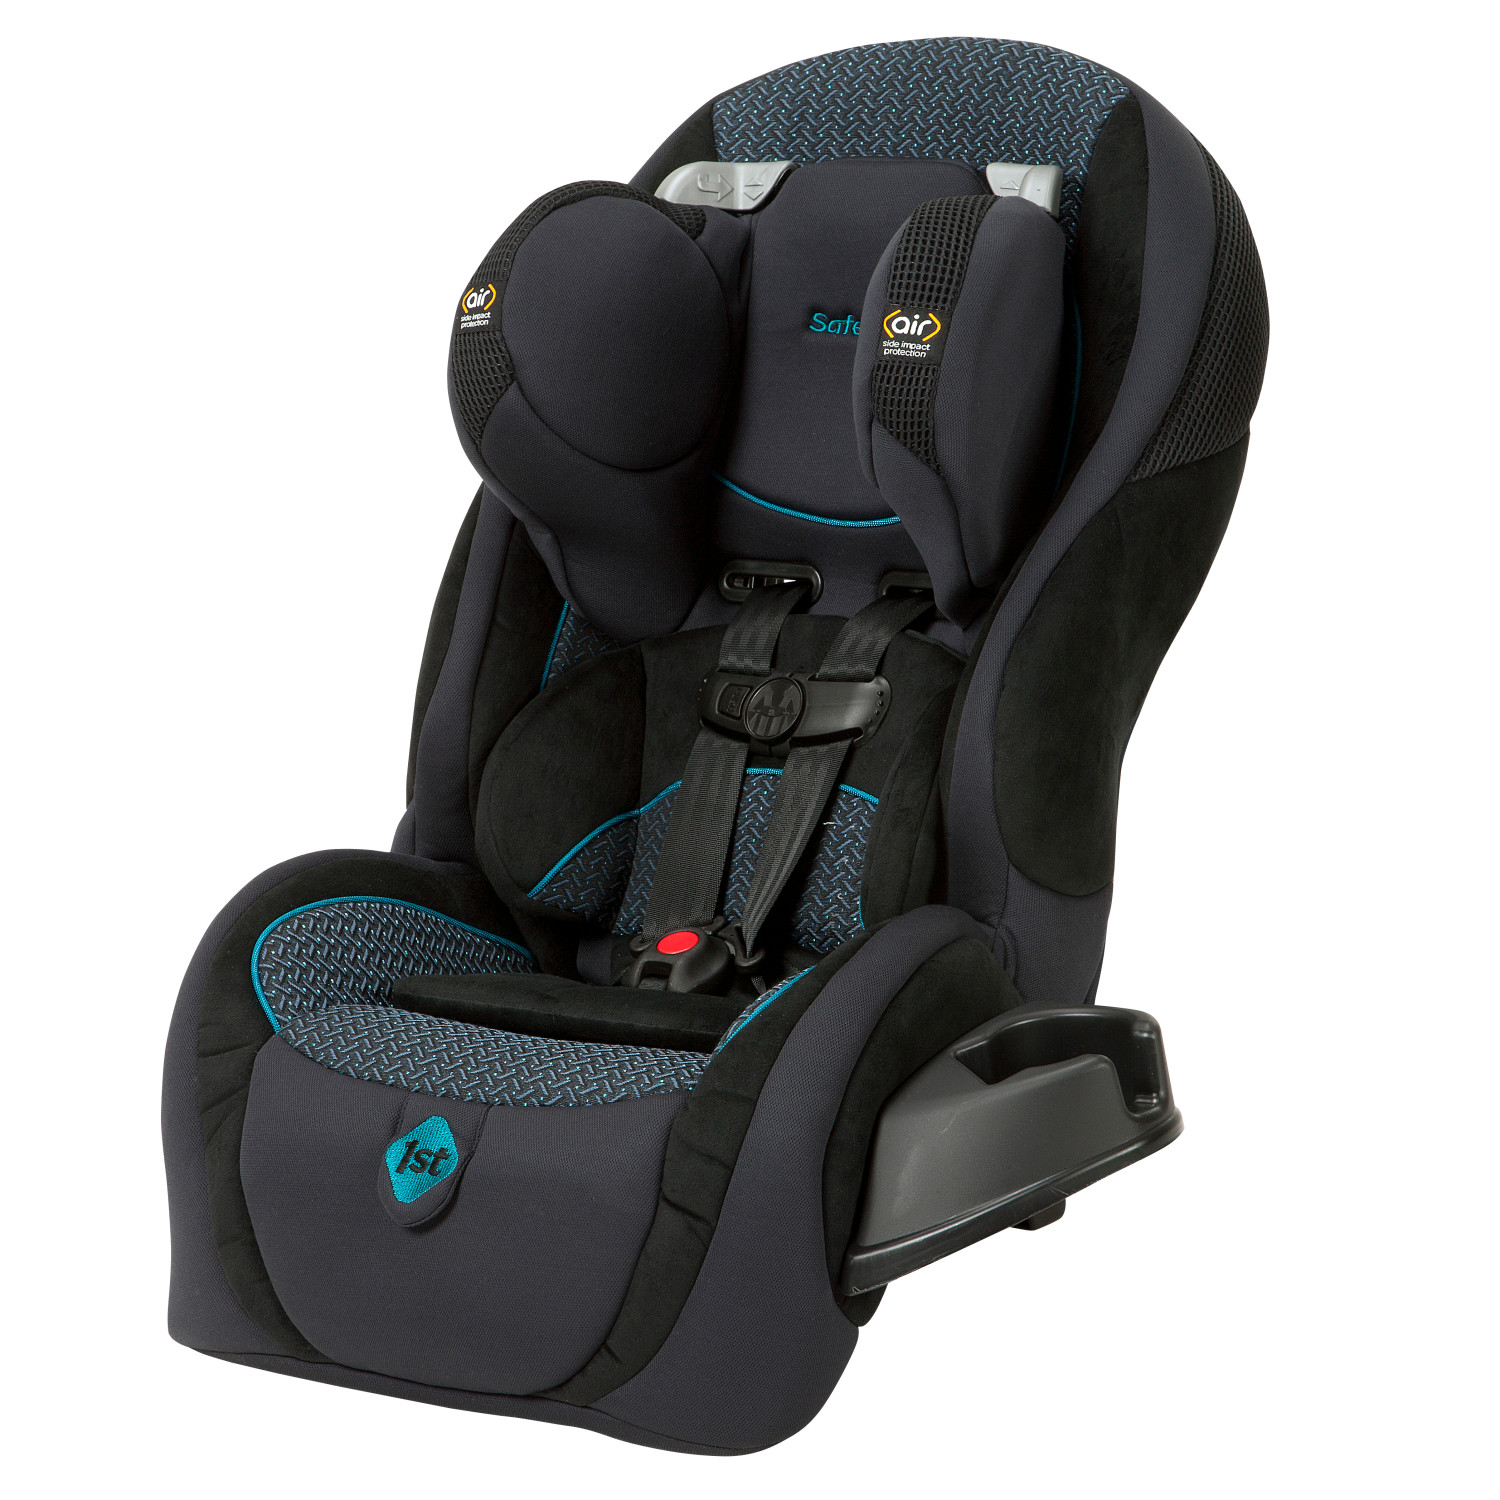 Safety-1st-Complete-Air-65-Convertible-Car-Seat thumbnail 54